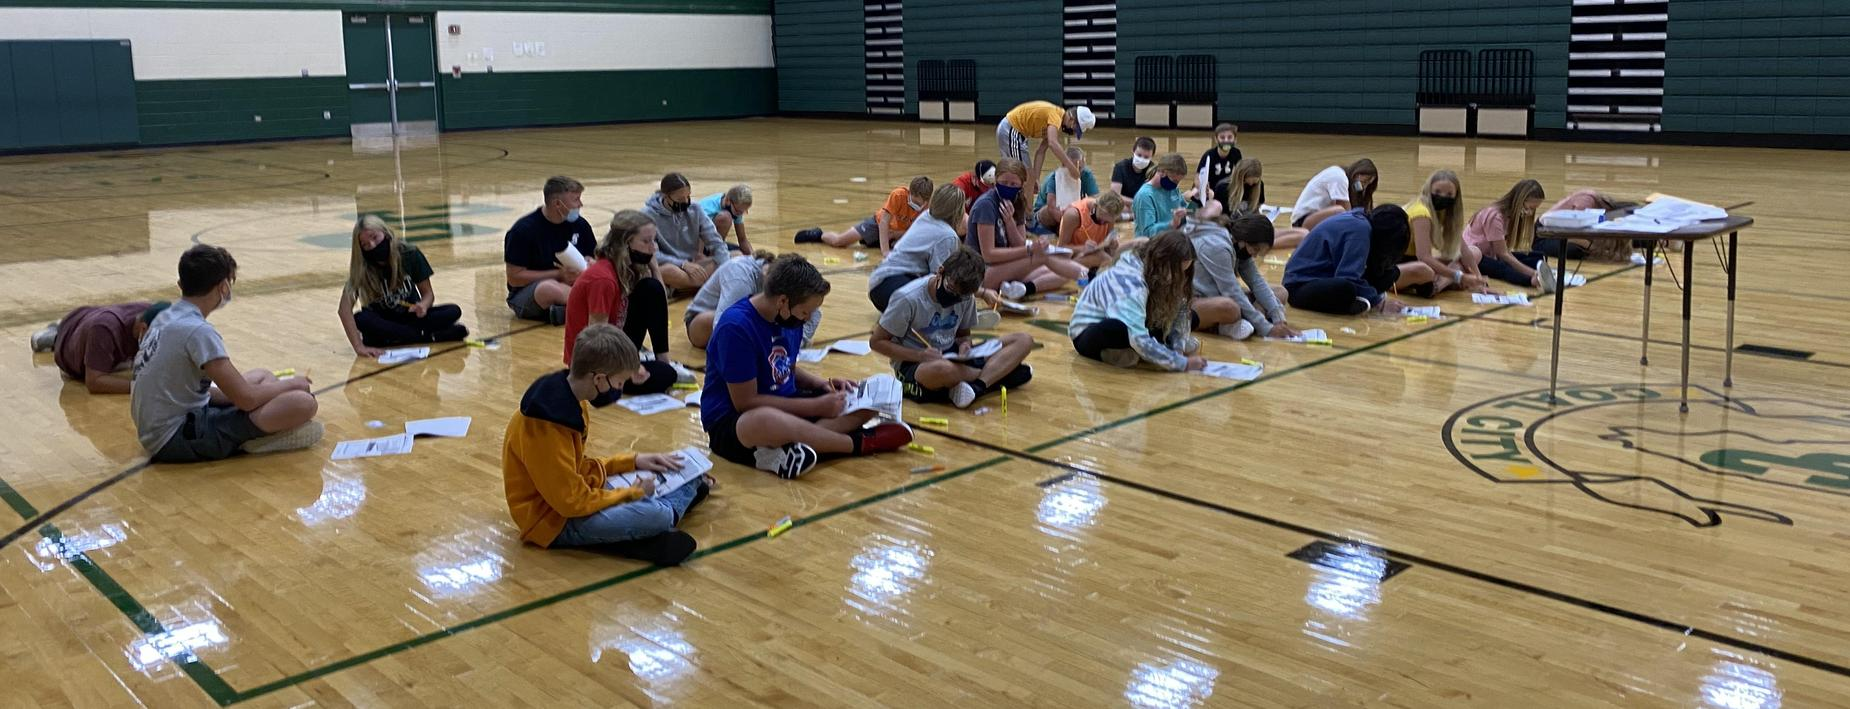 CCMS learning in the gym